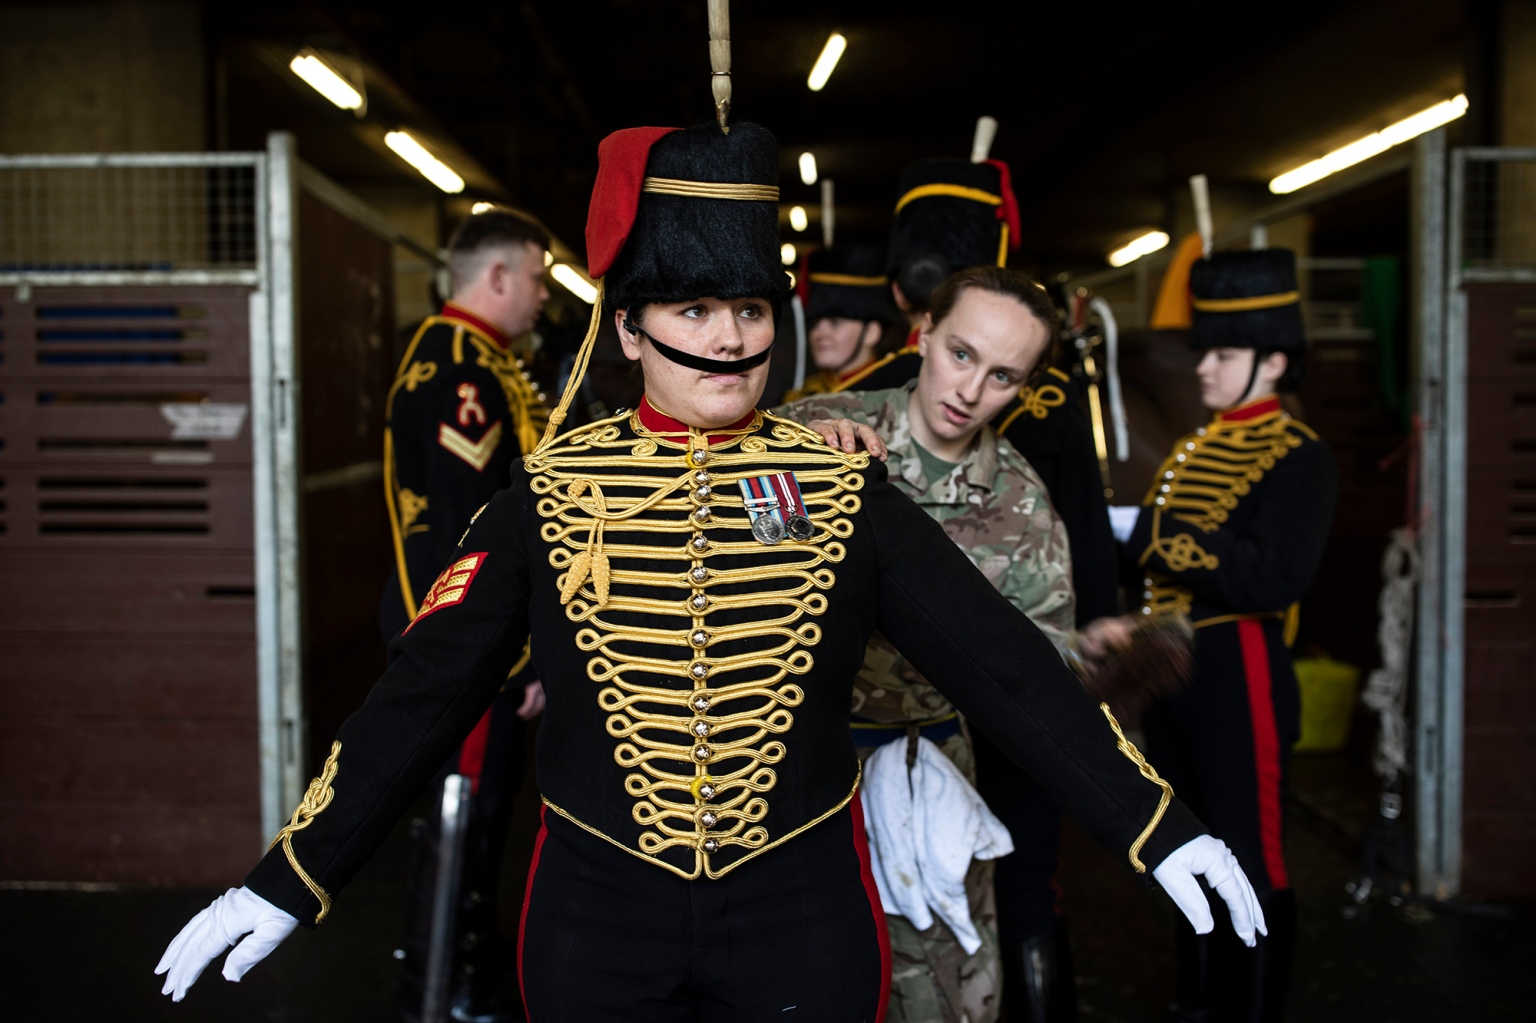 Members of the King's Troop Royal Horse Artillery prepare their ceremonial dress at Wellington Barracks before heading to Green Park to stage a 41-gun salute to mark 67 years since HM Queen Elizabeth II's ascension to the throne in London on Feb. 6. (Dan Kitwood/Getty Images)